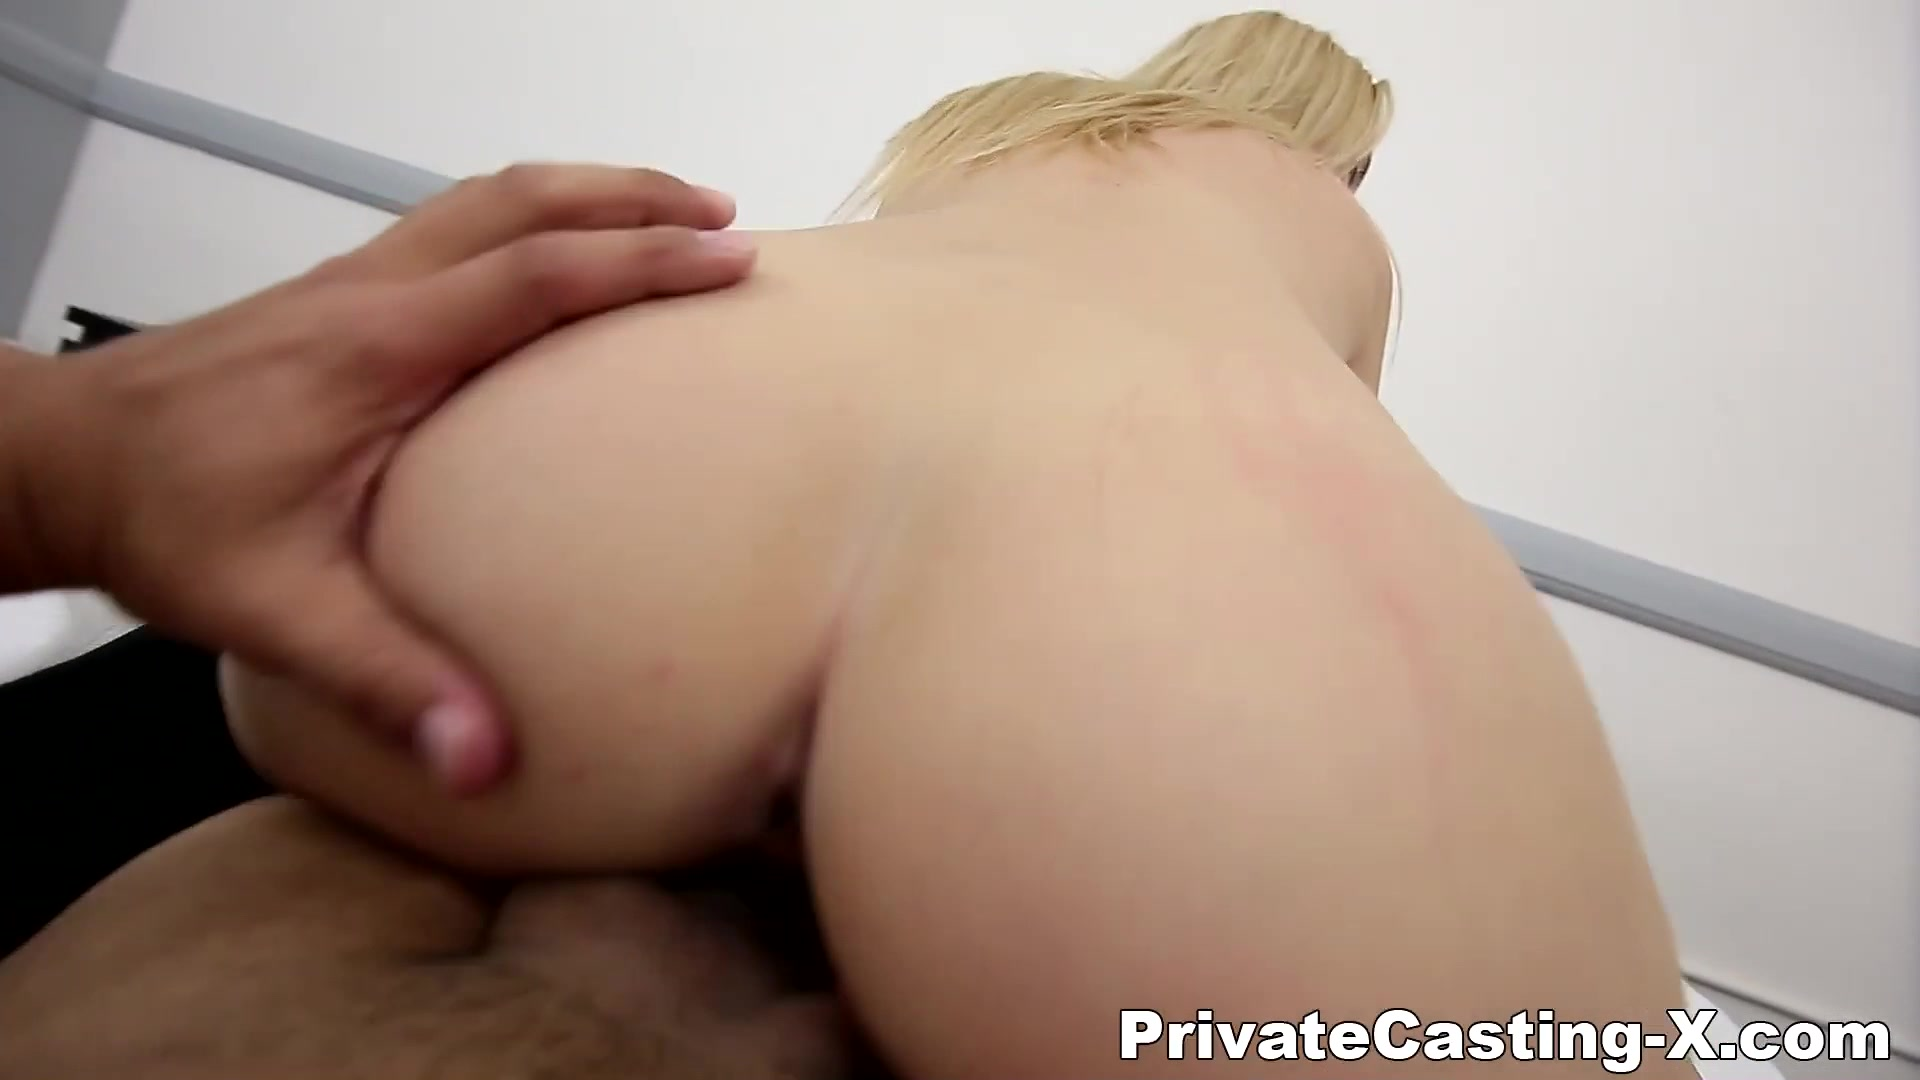 Cast of empire dating service XXX Porn tube